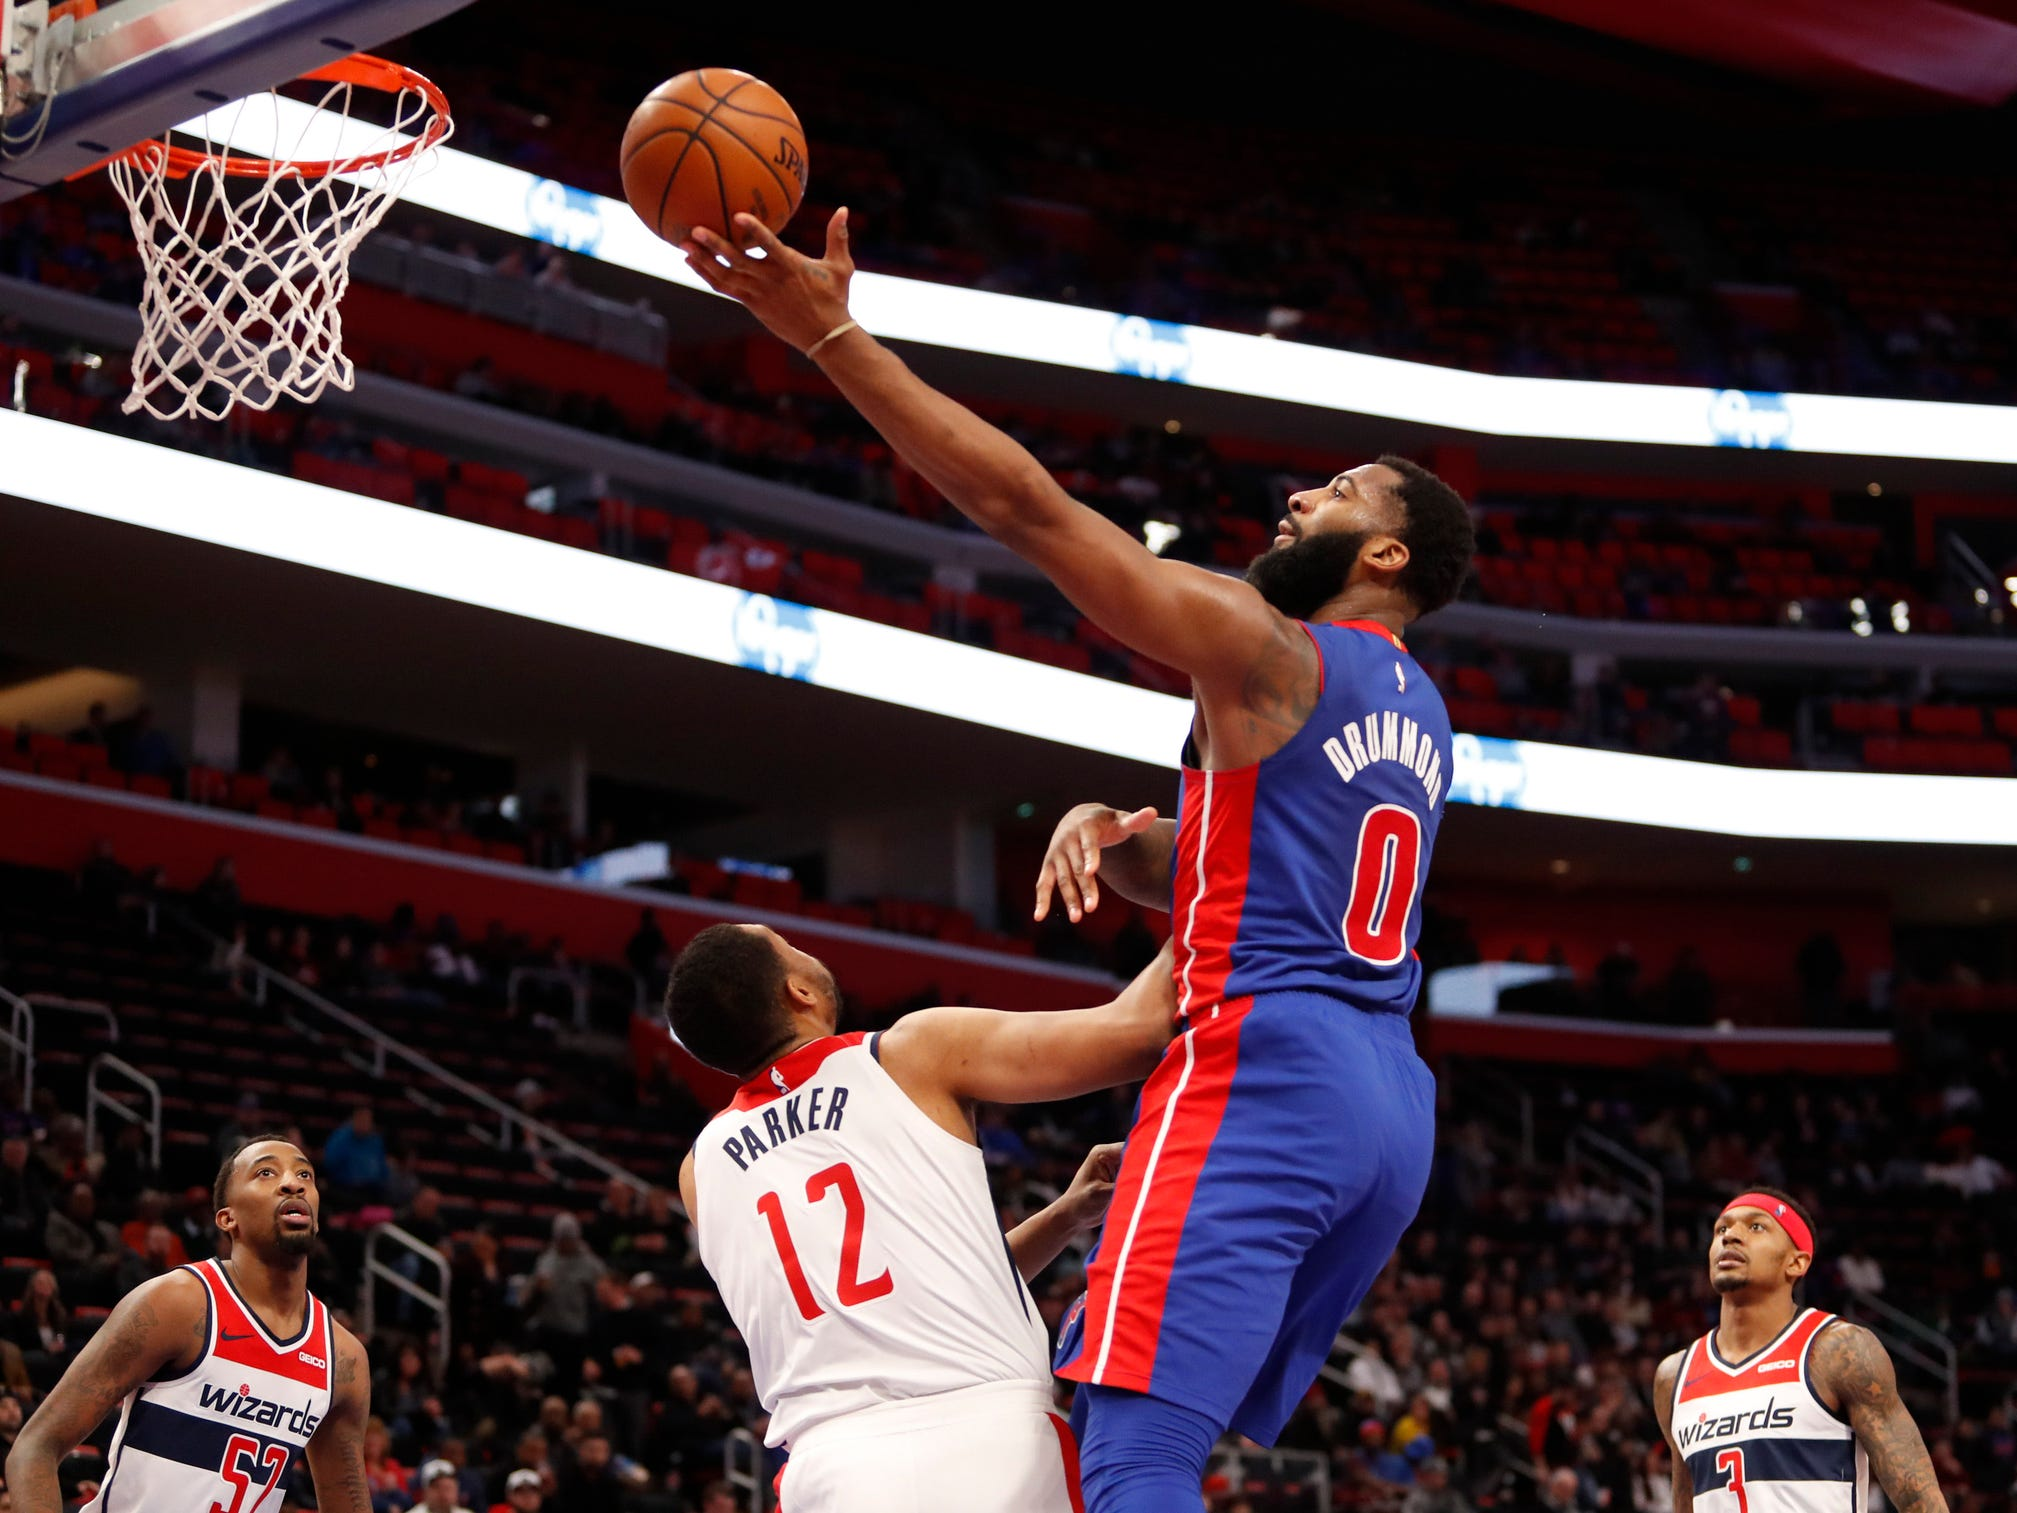 Detroit Pistons center Andre Drummond shoots over Washington Wizards forward Jabari Parker during the third quarter at Little Caesars Arena, Feb. 11, 2019.